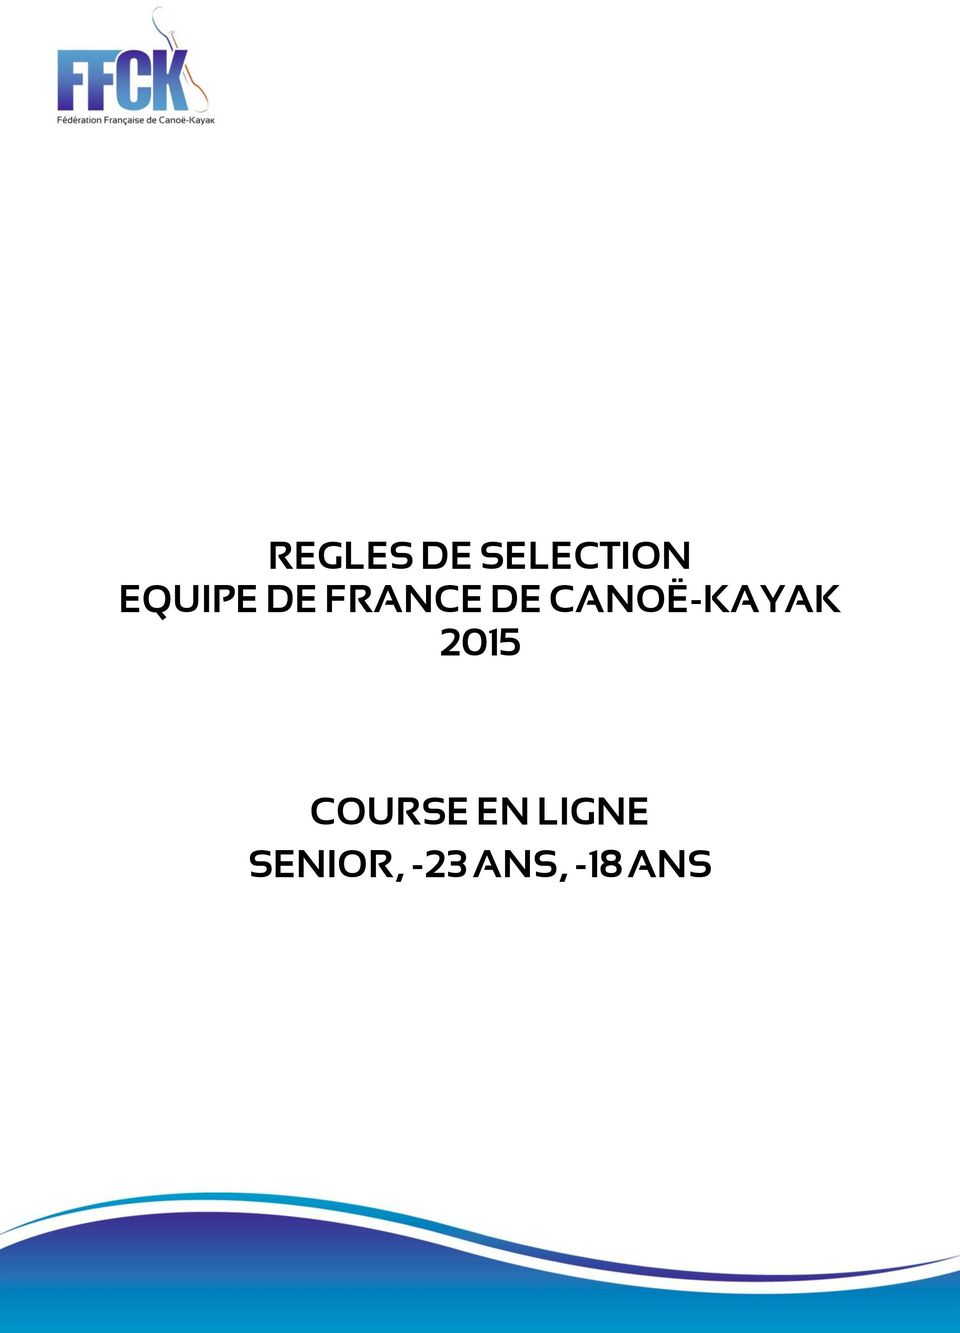 CANOË-KAYAK 2015 COURSE